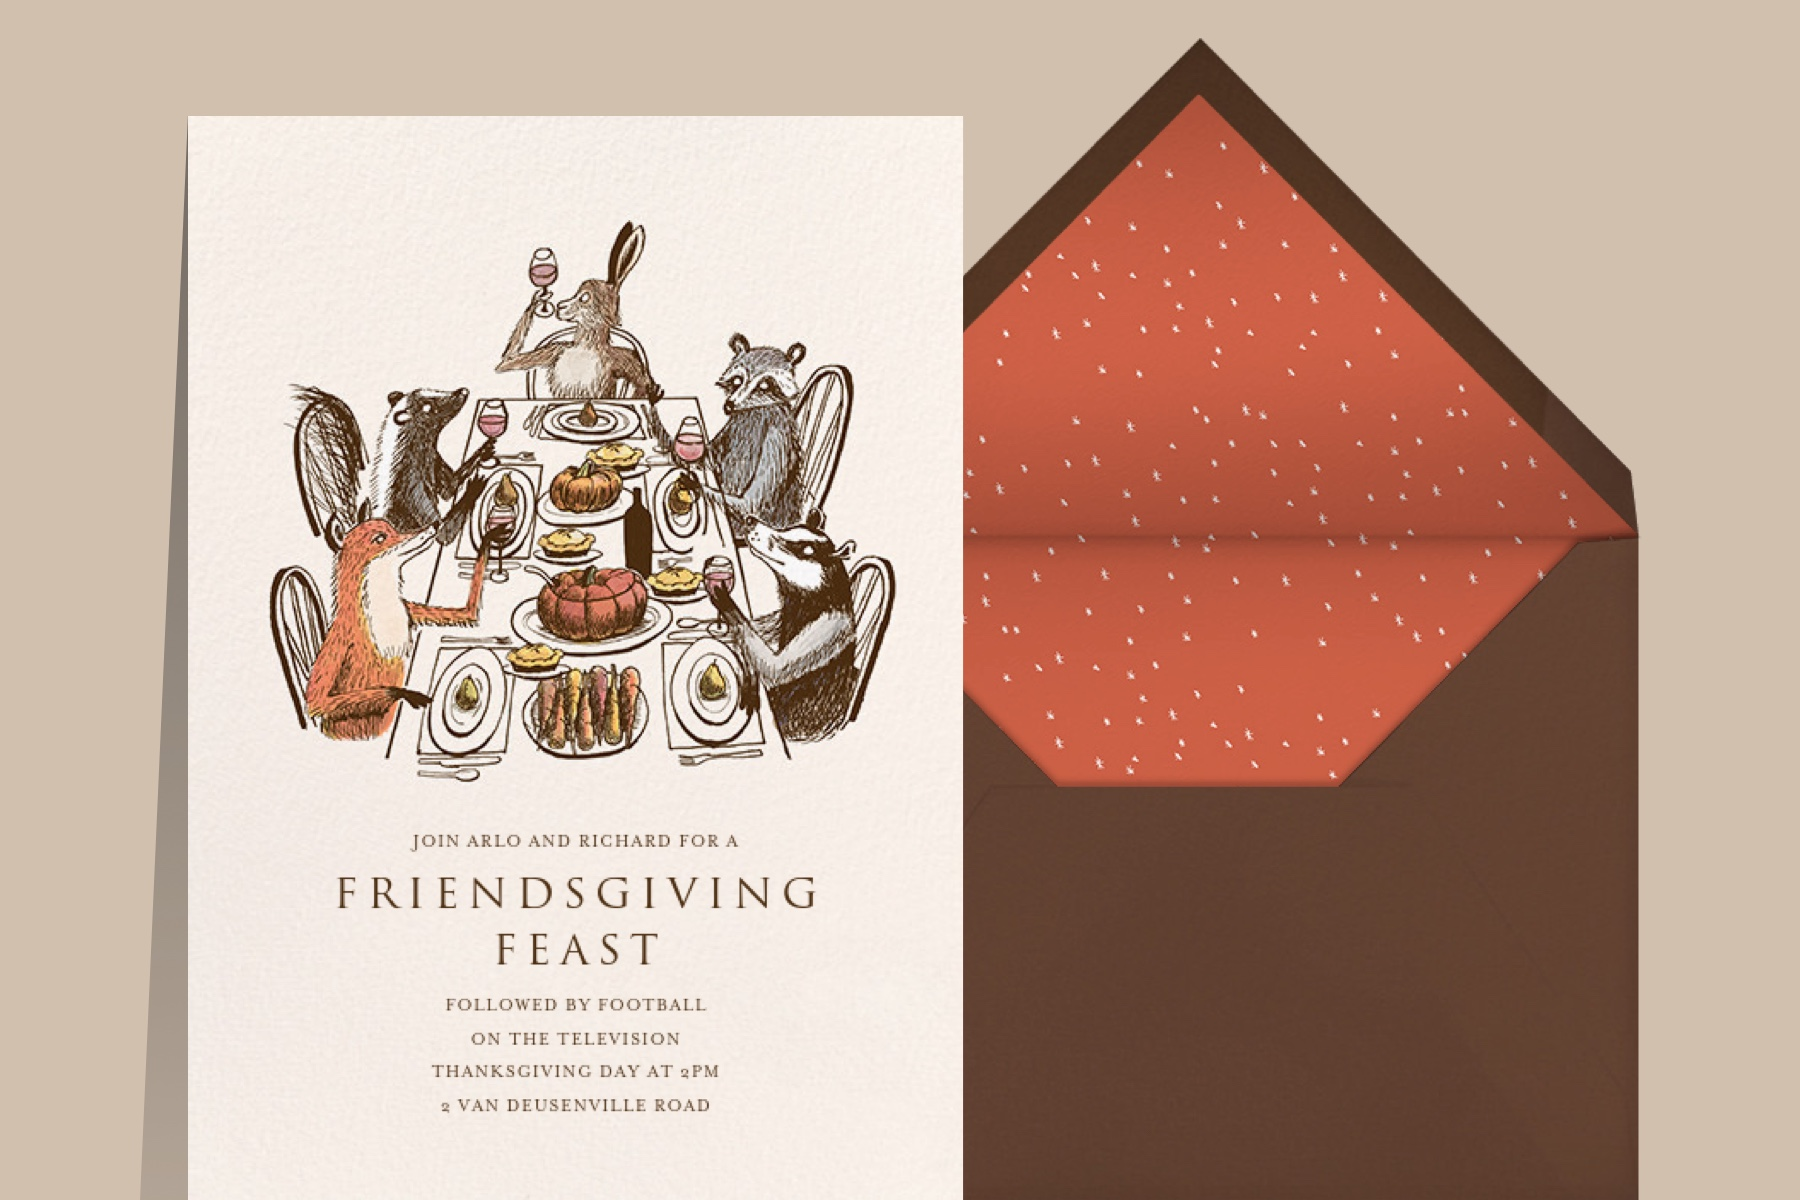 friendsgiving invitations from Paperless Post